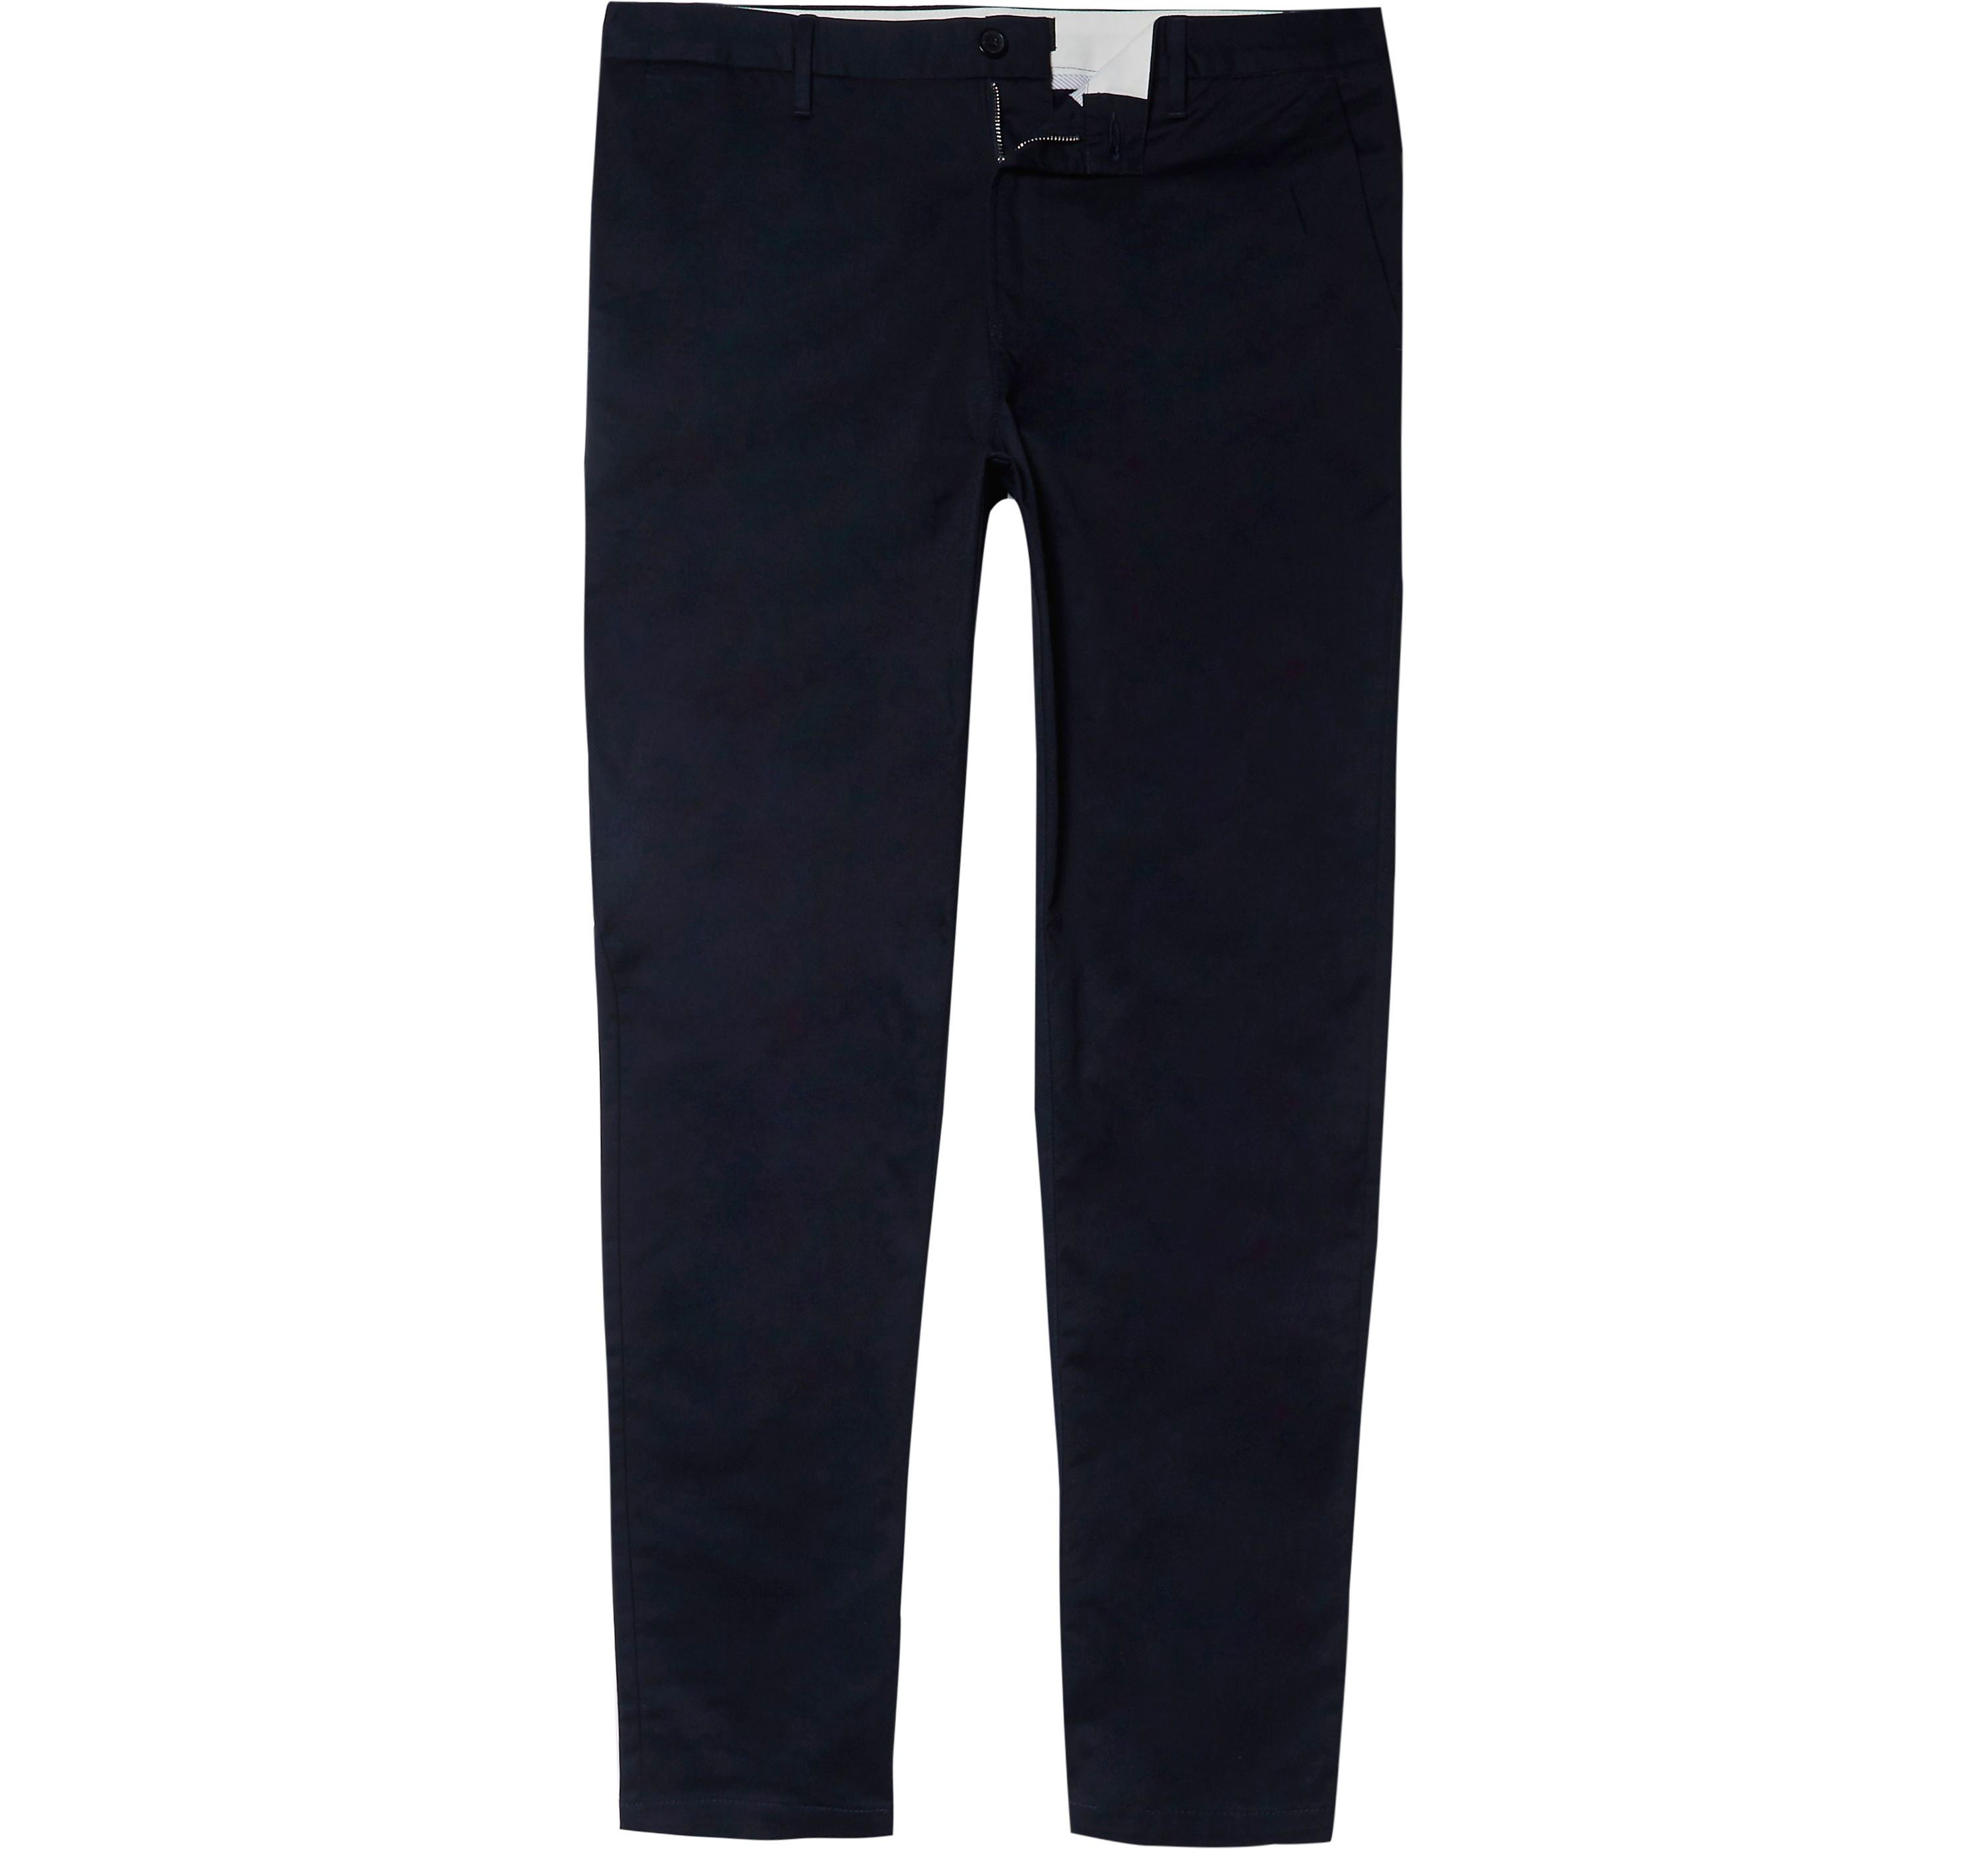 River Island Mens Navy slim fit chino trousers